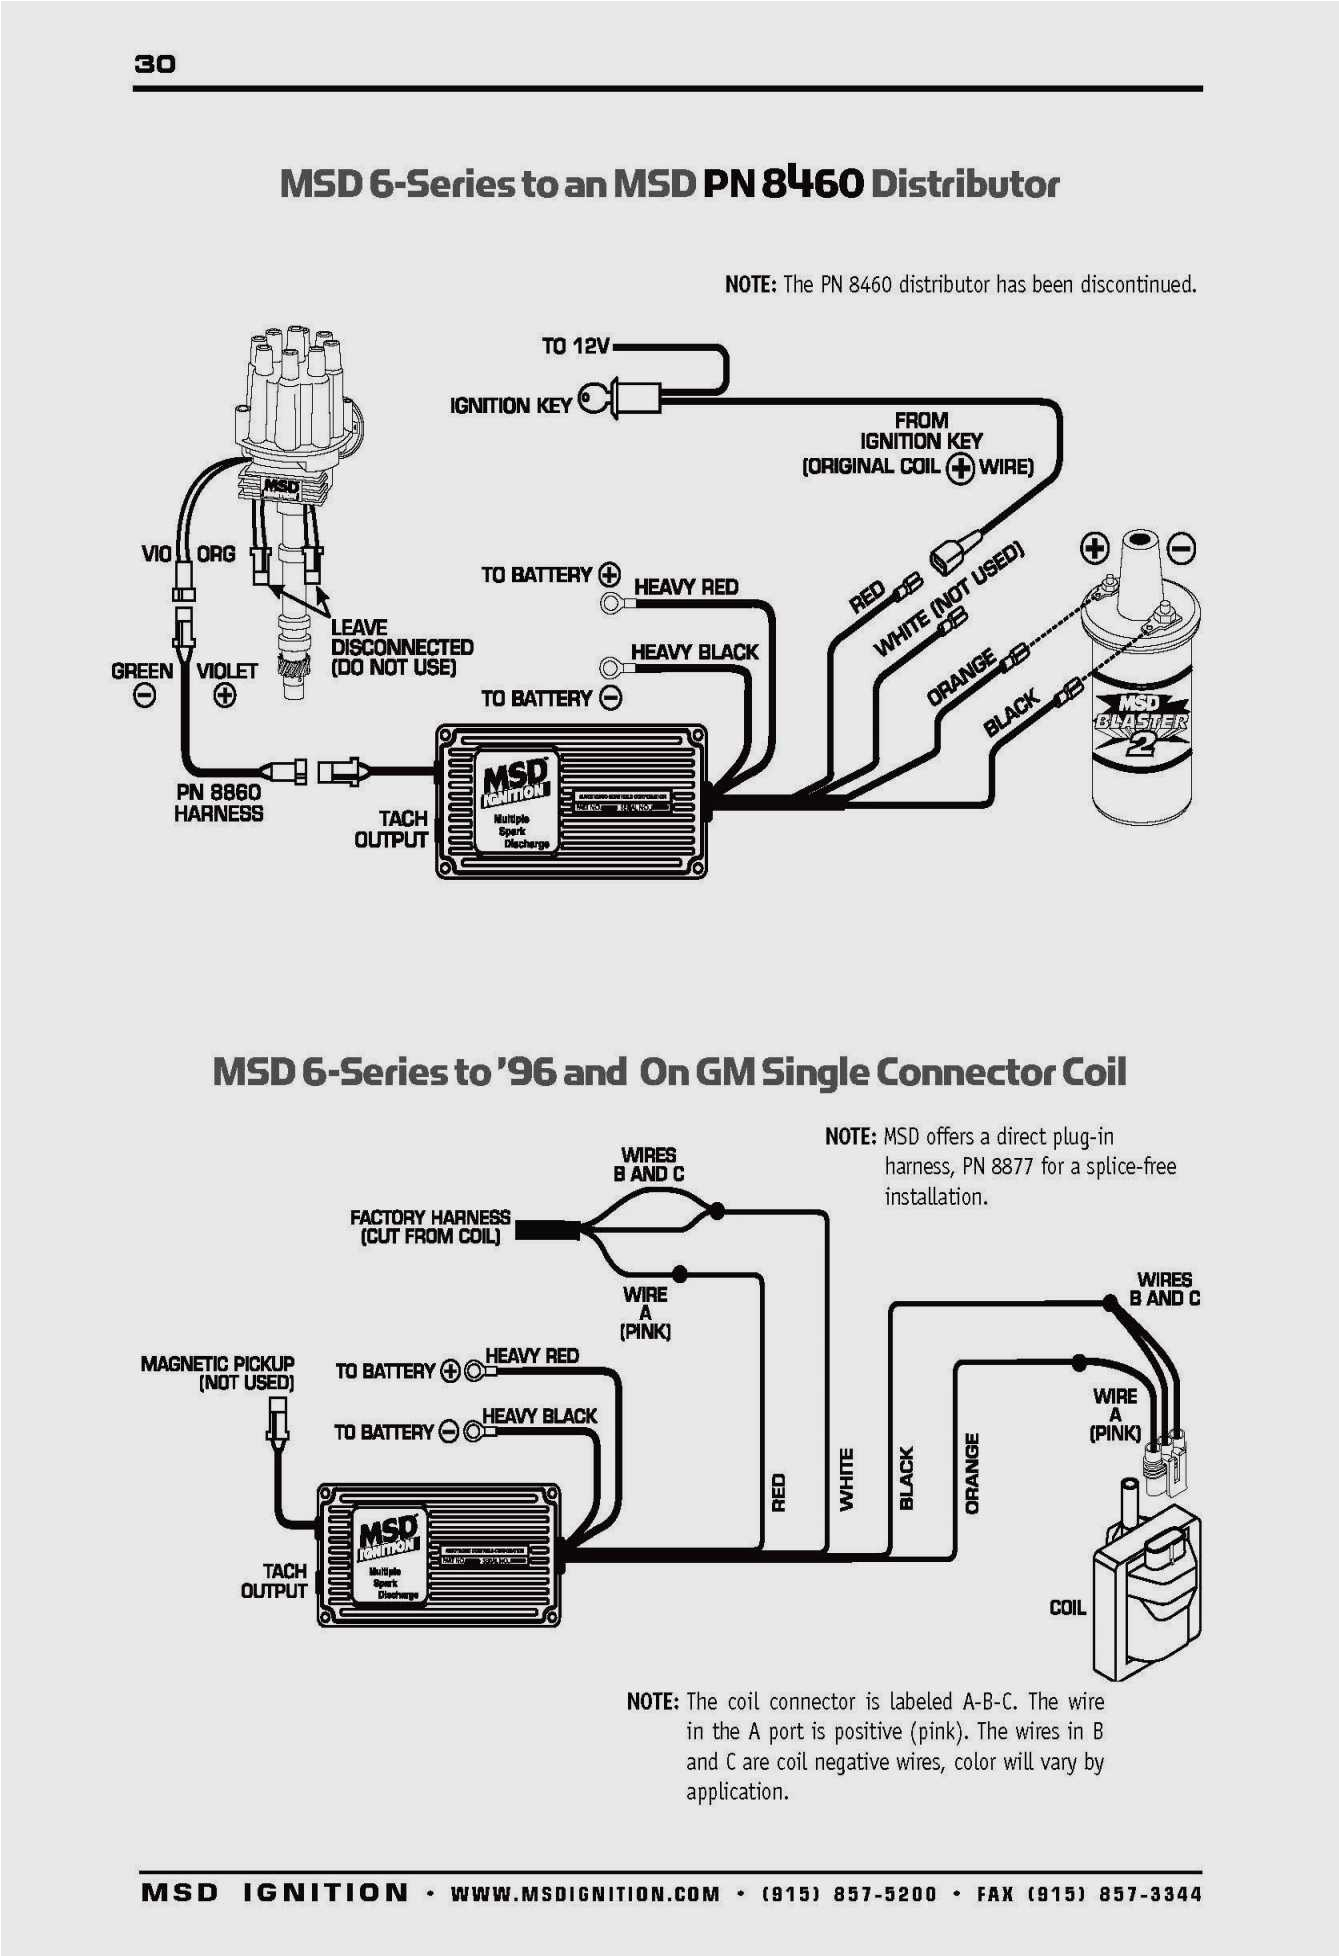 msd ignition wiring diagram for 351 wiring diagram expert ford 460 msd ignition wiring diagram